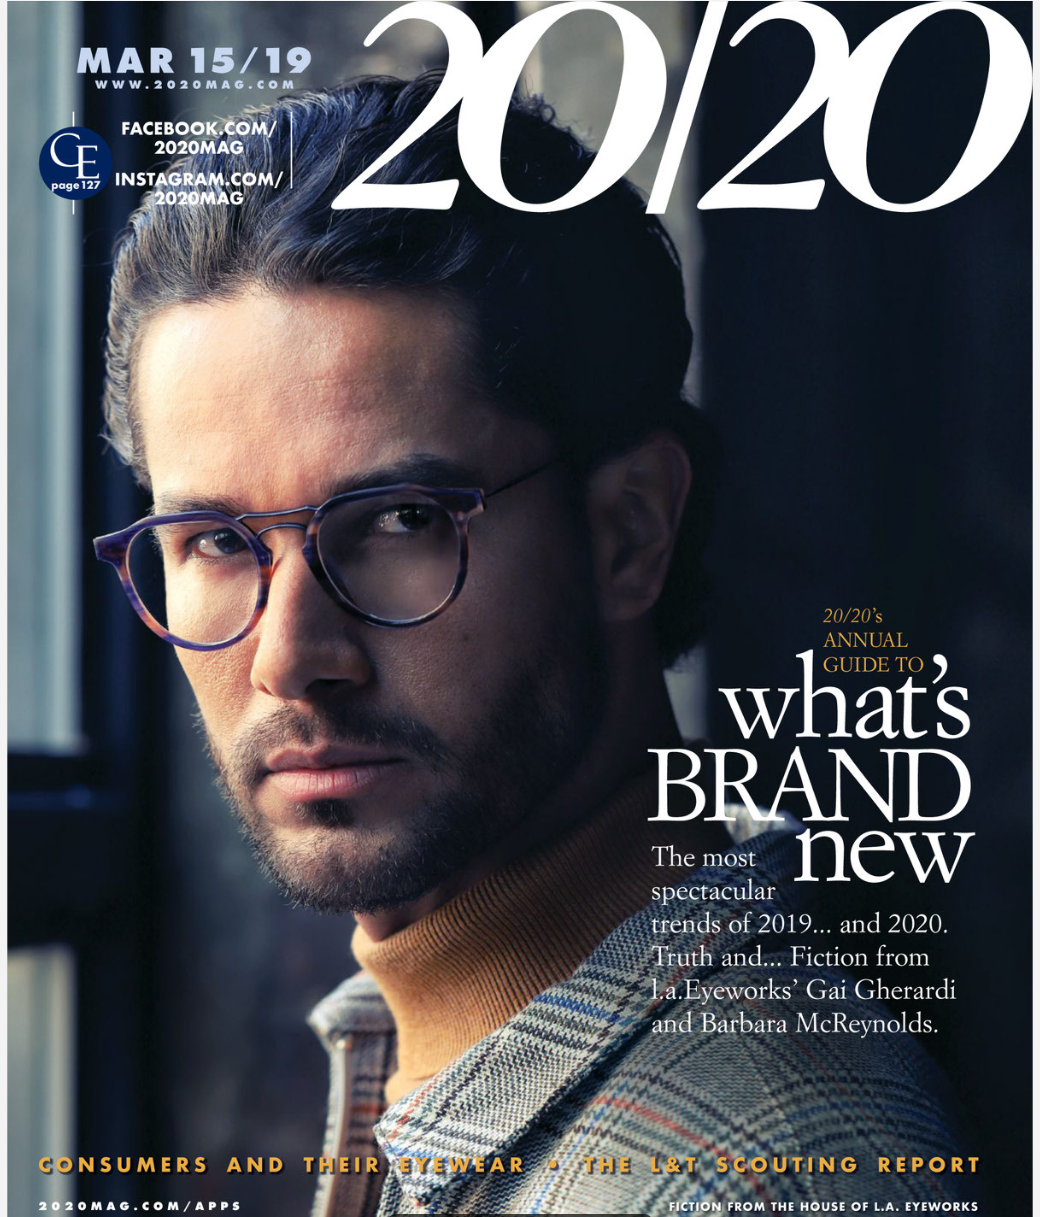 2020 magazine march cover.PNG